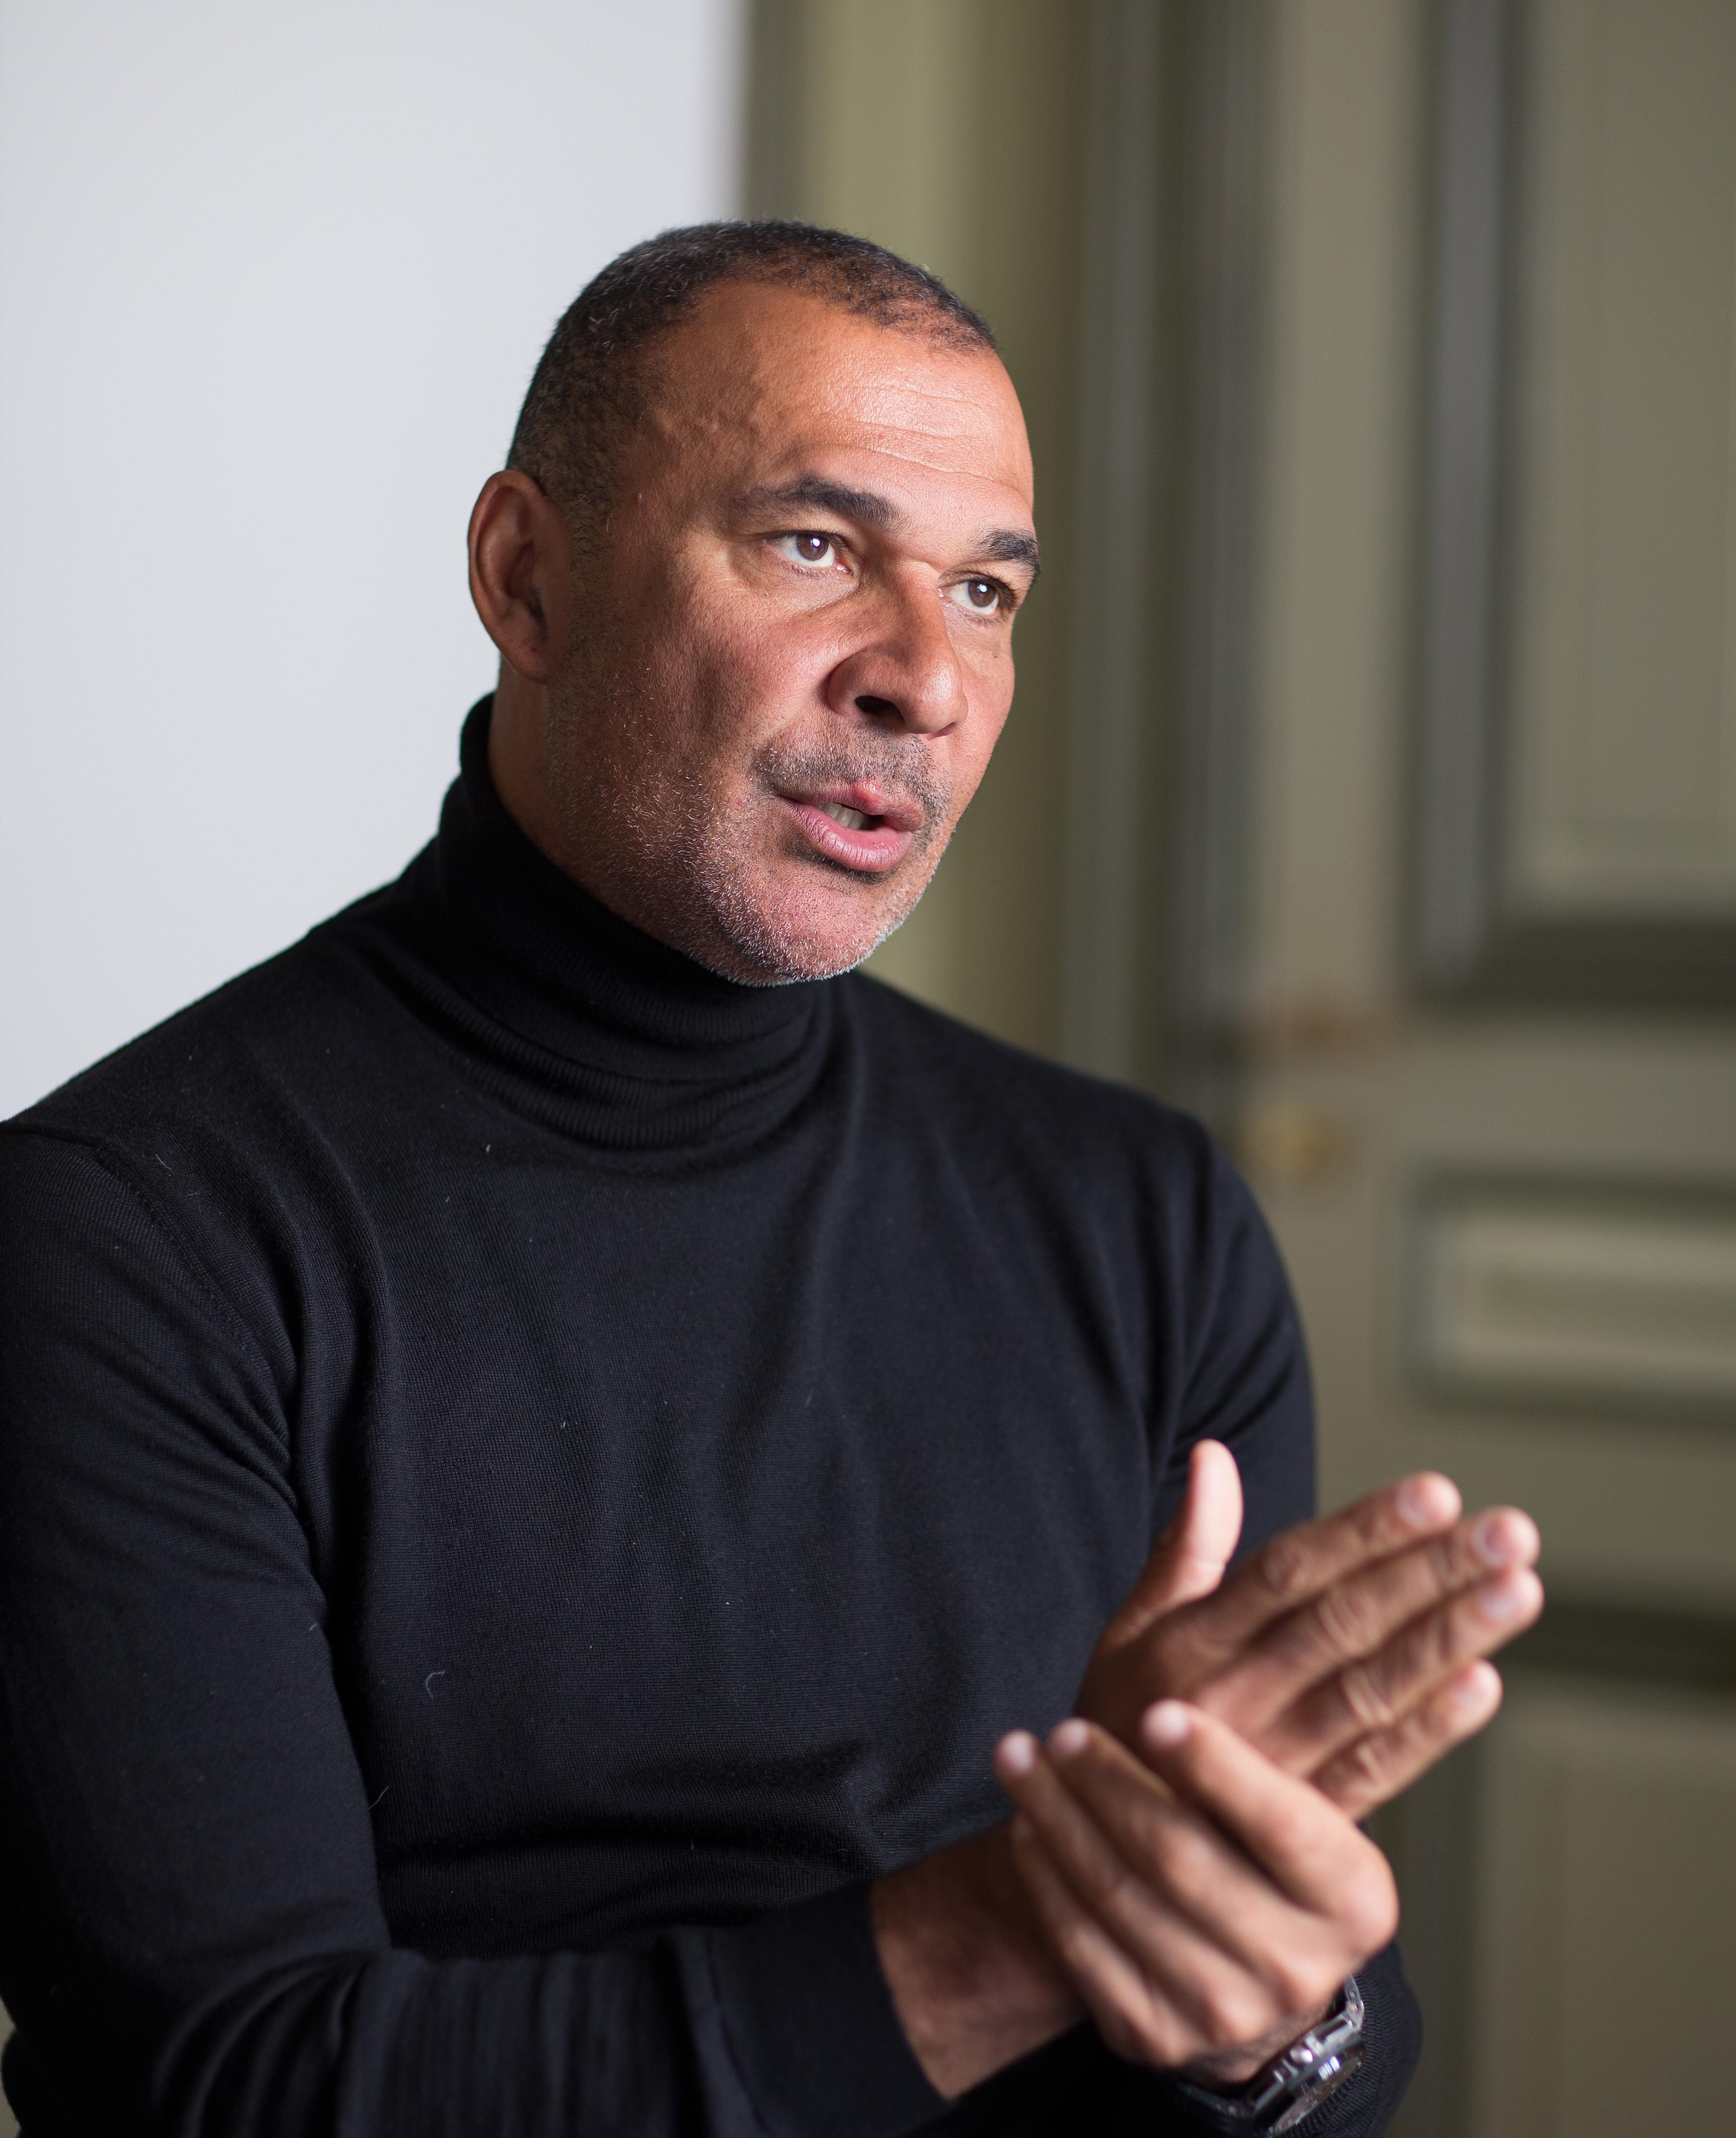 Gullit says he wants to help bring eSports into the mainstream